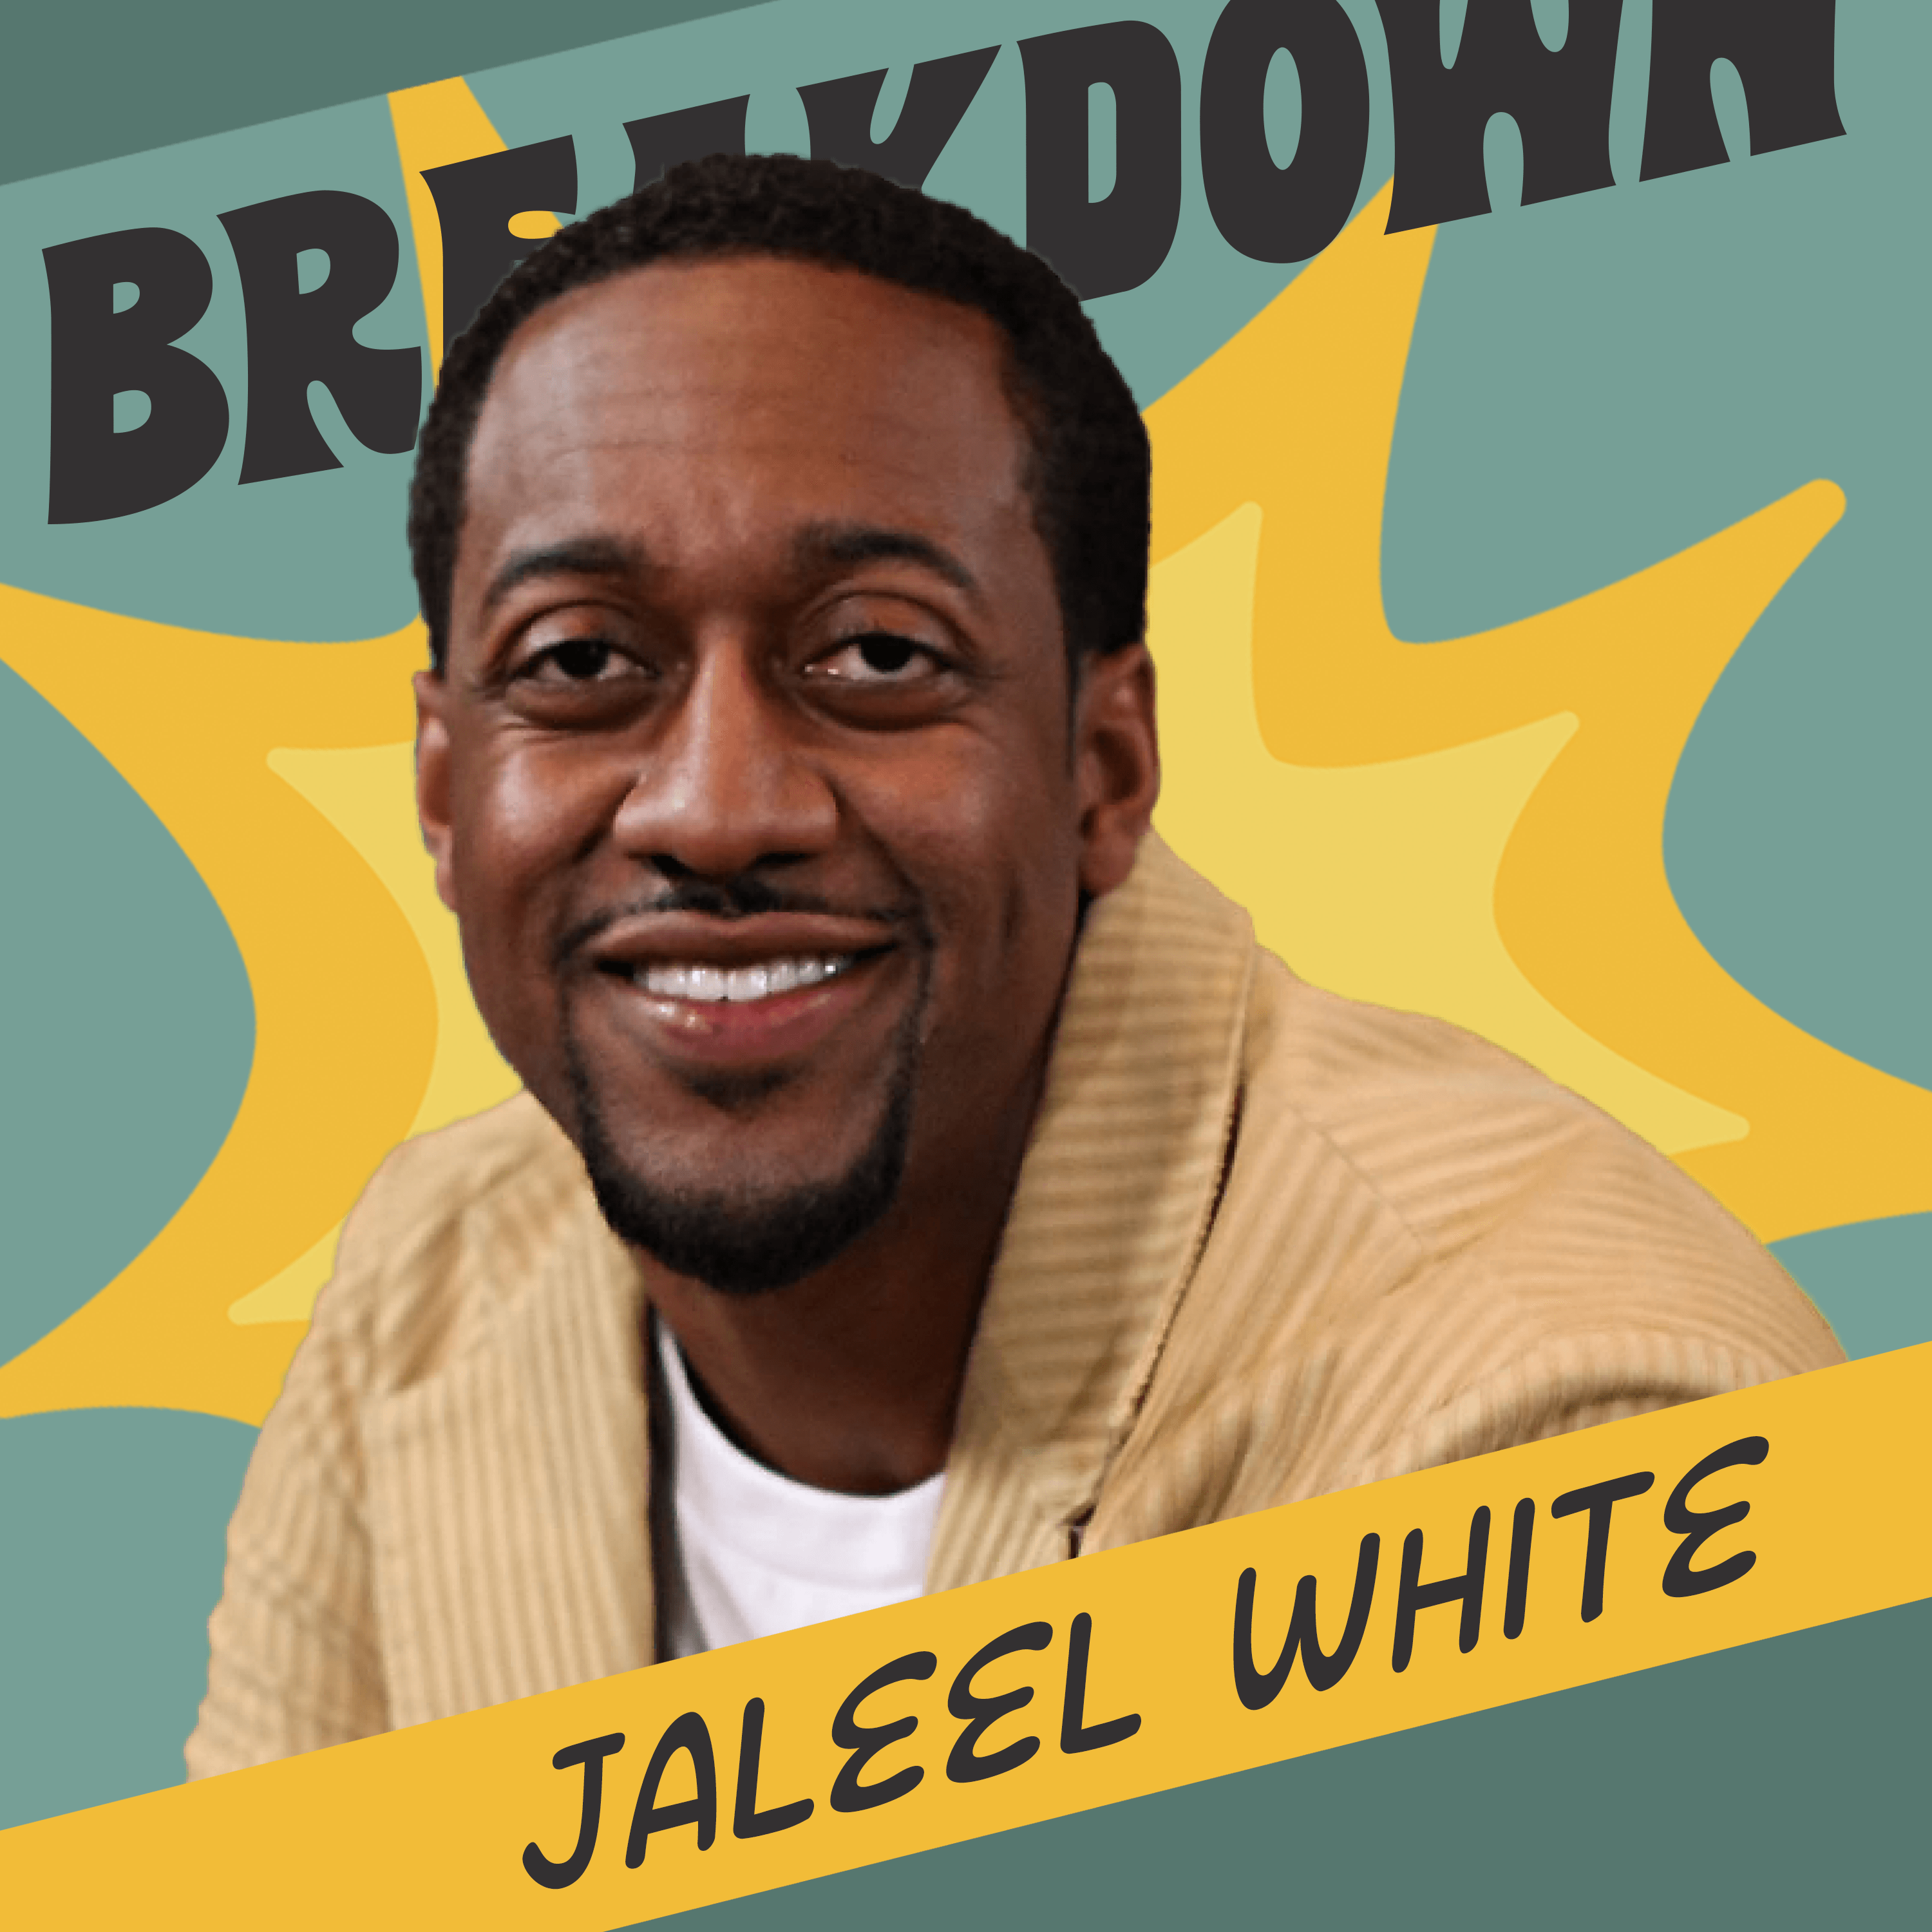 Did I Do That? A Case Study of Young Star with Jaleel White